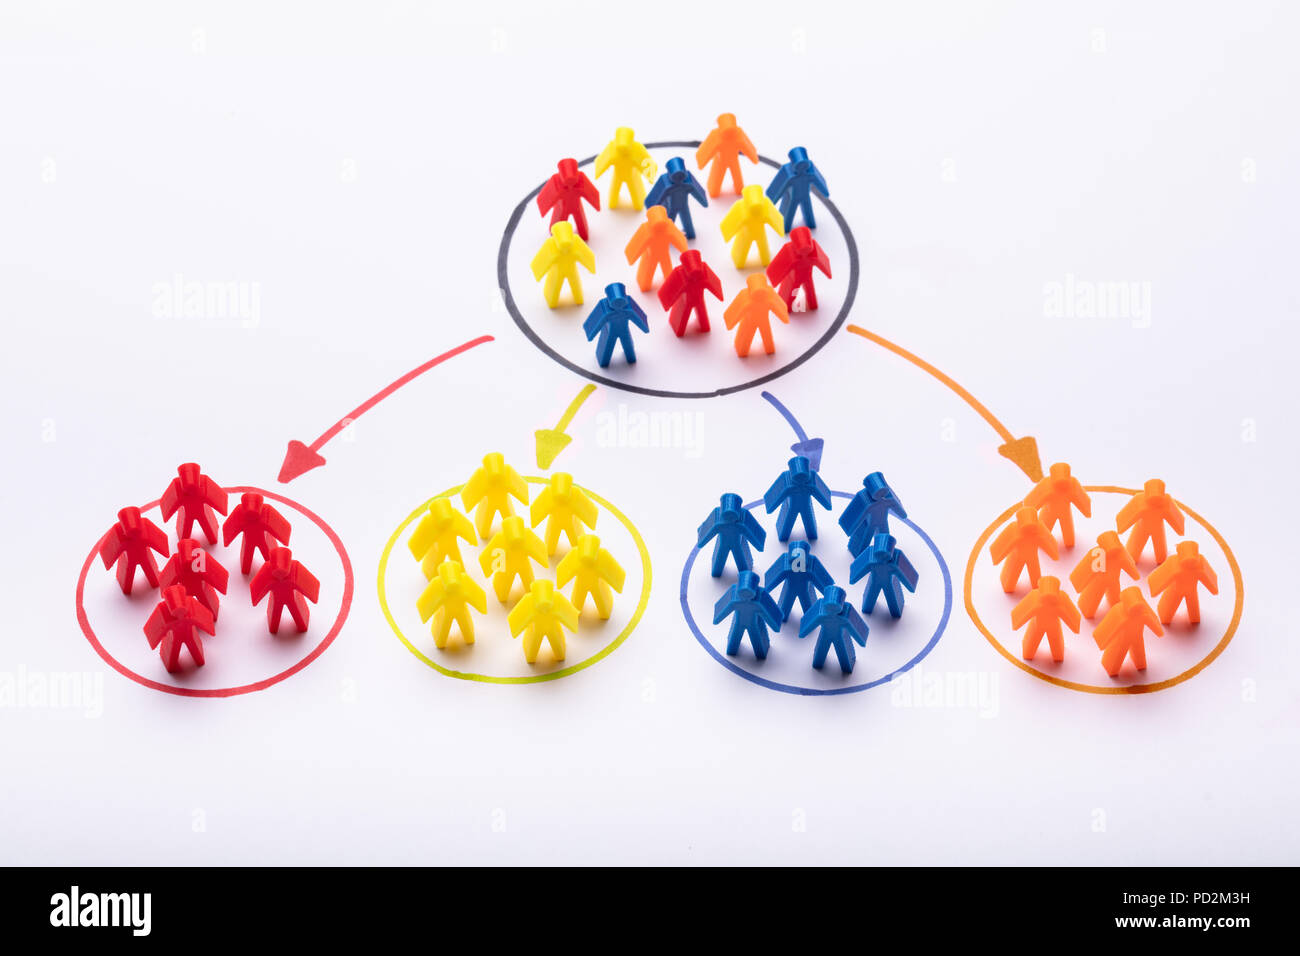 Choosing The Right Person From Colorful Team Stock Photo